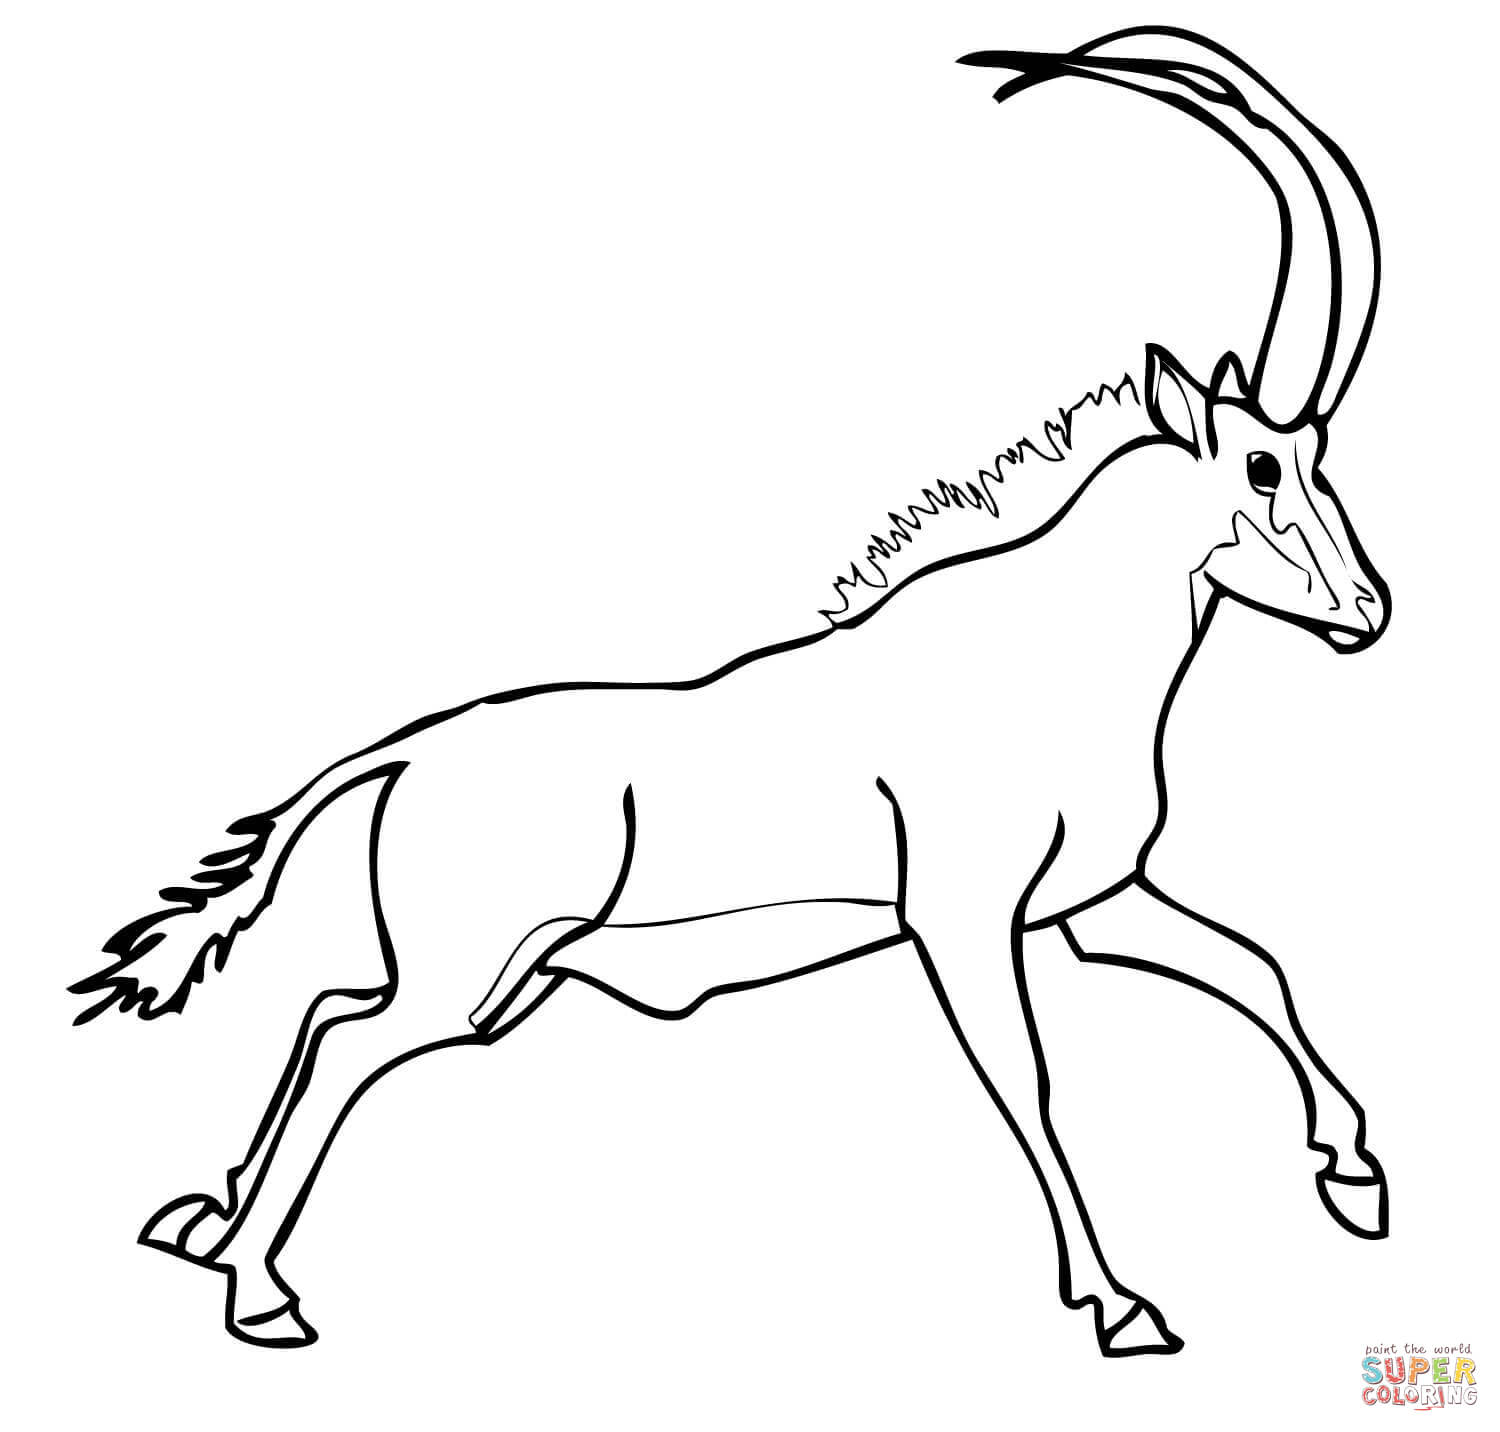 wildebeest coloring page wildebeest drawing at getdrawings free download coloring wildebeest page